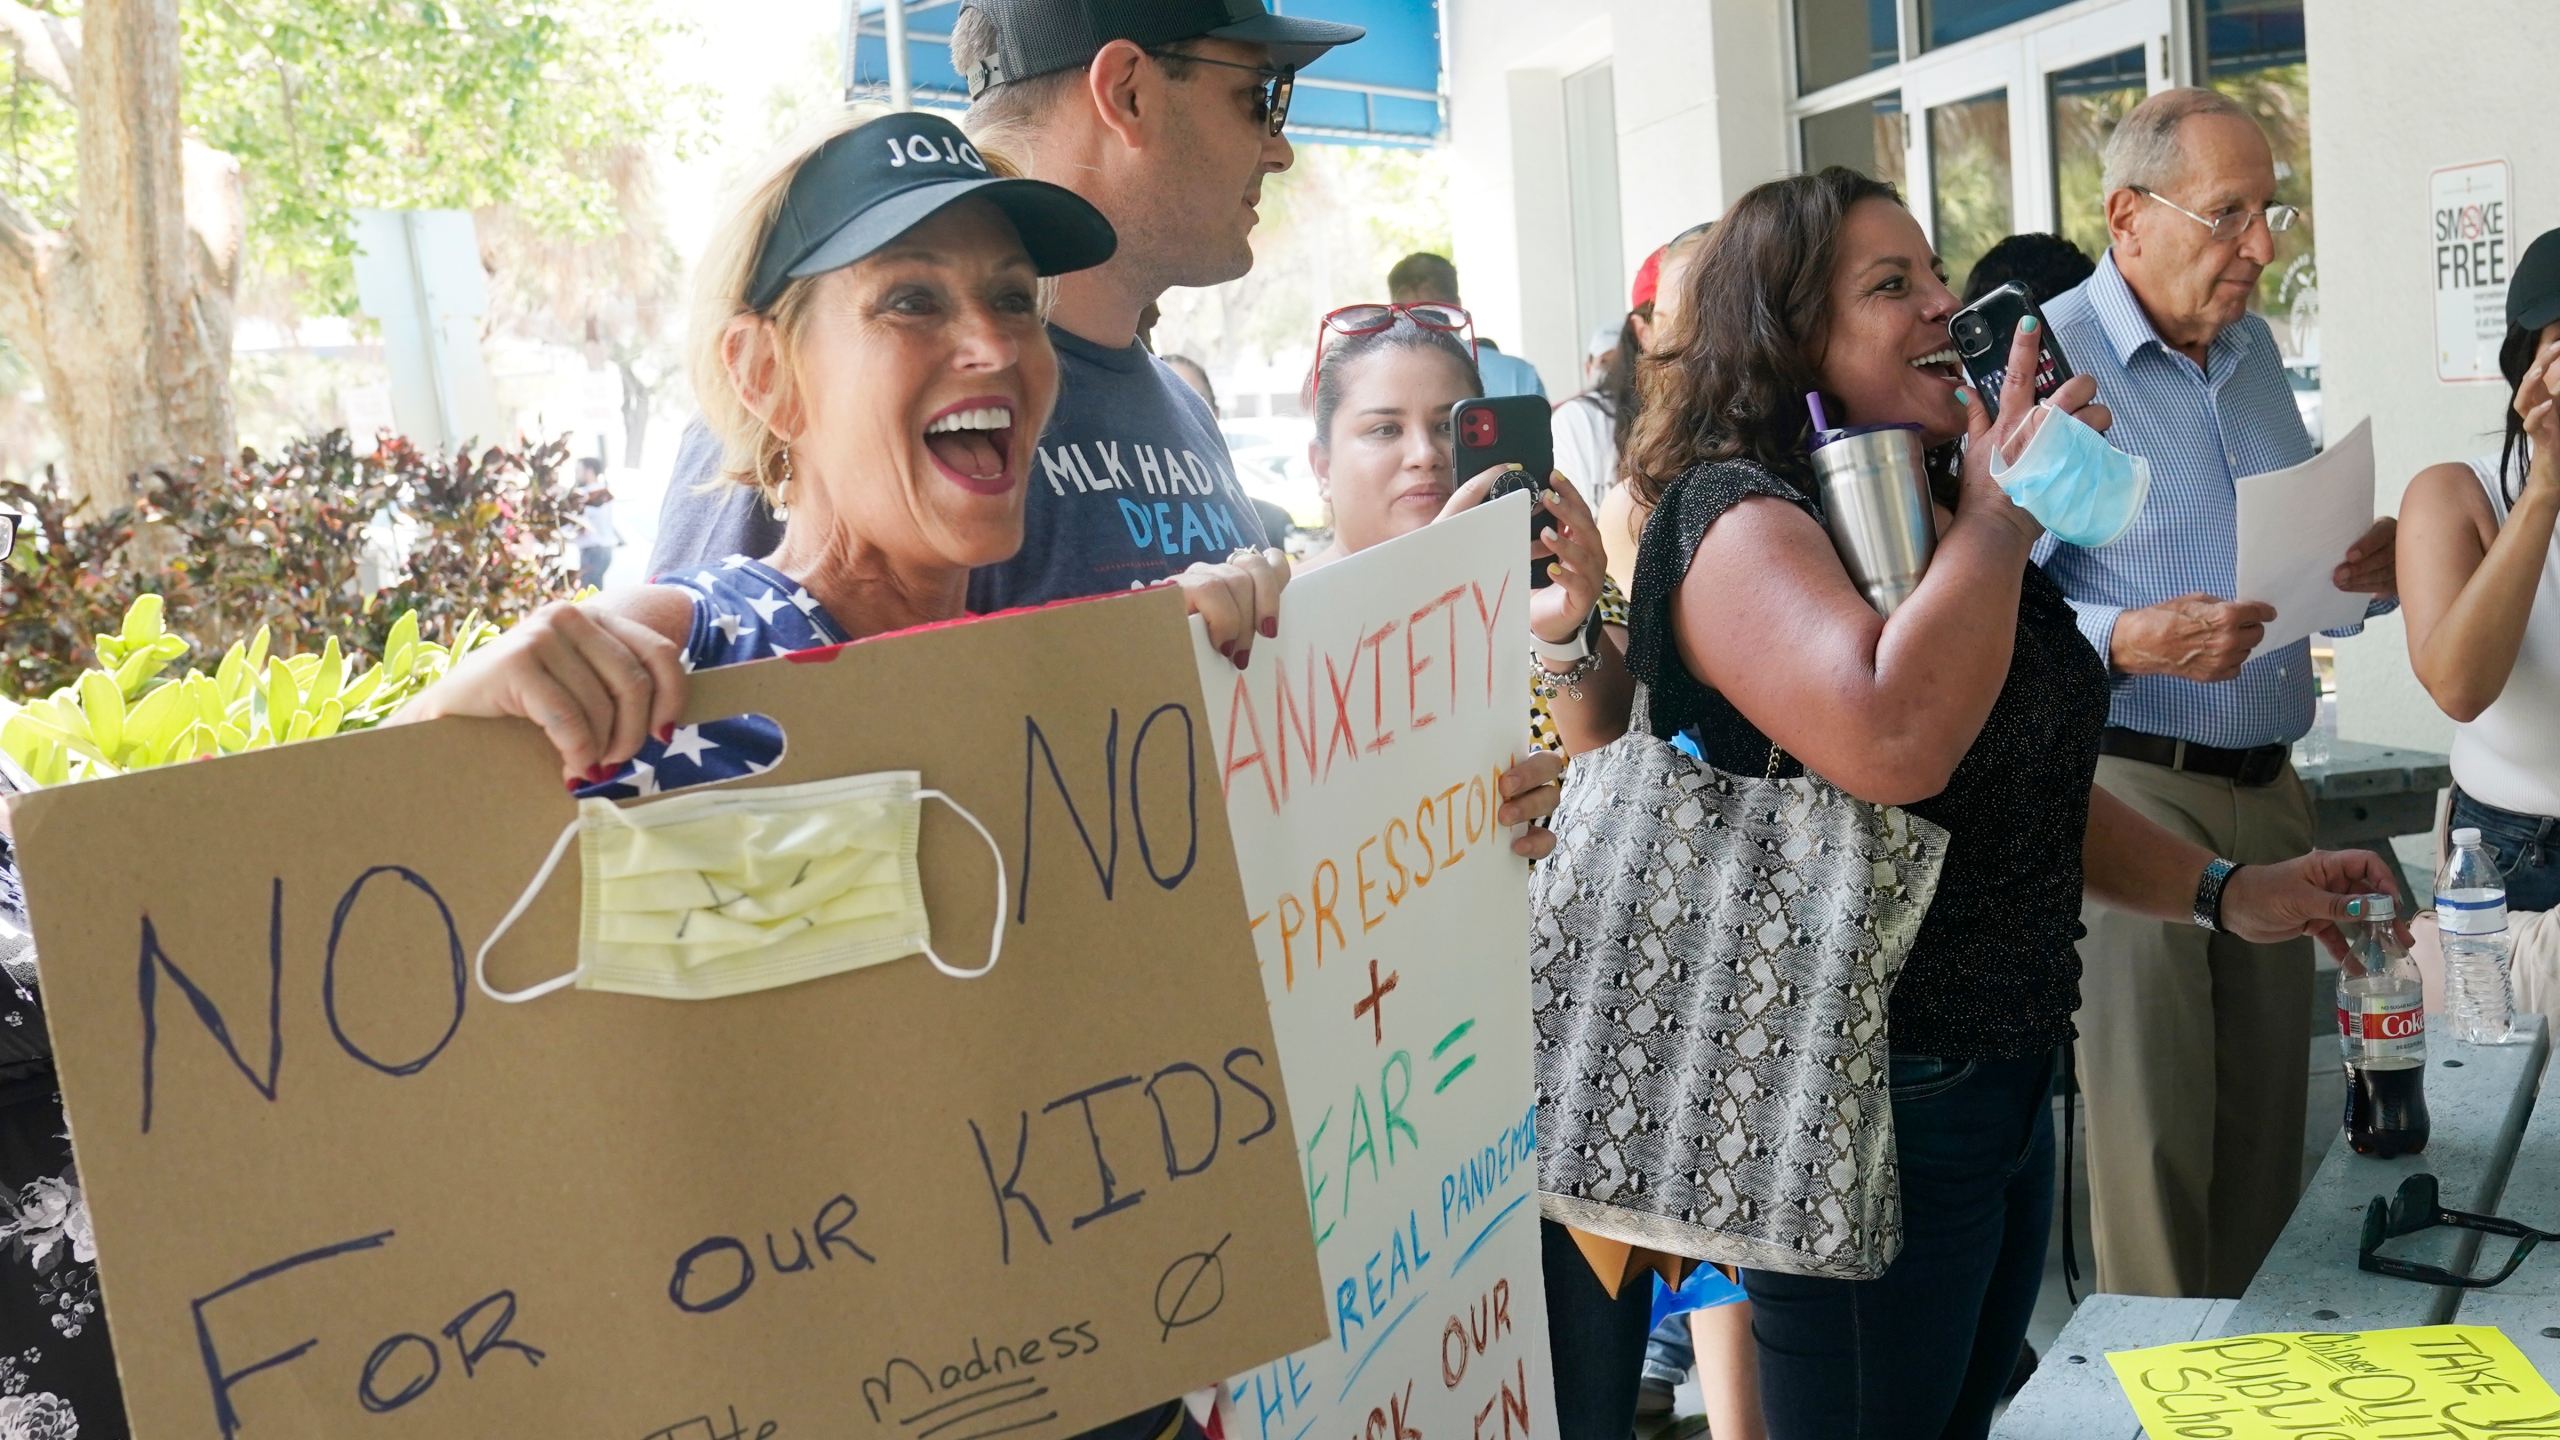 Joann Marcus of Fort Lauderdale, left, cheers as she listens to the Broward School Board's emergency meeting, Wednesday, July 28, 2021, in Fort Lauderdale, Fla. A small but vocal group spoke vehemently against masks, saying their personal rights were being eroded and their children were suffering socially. (AP Photo/Marta Lavandier)